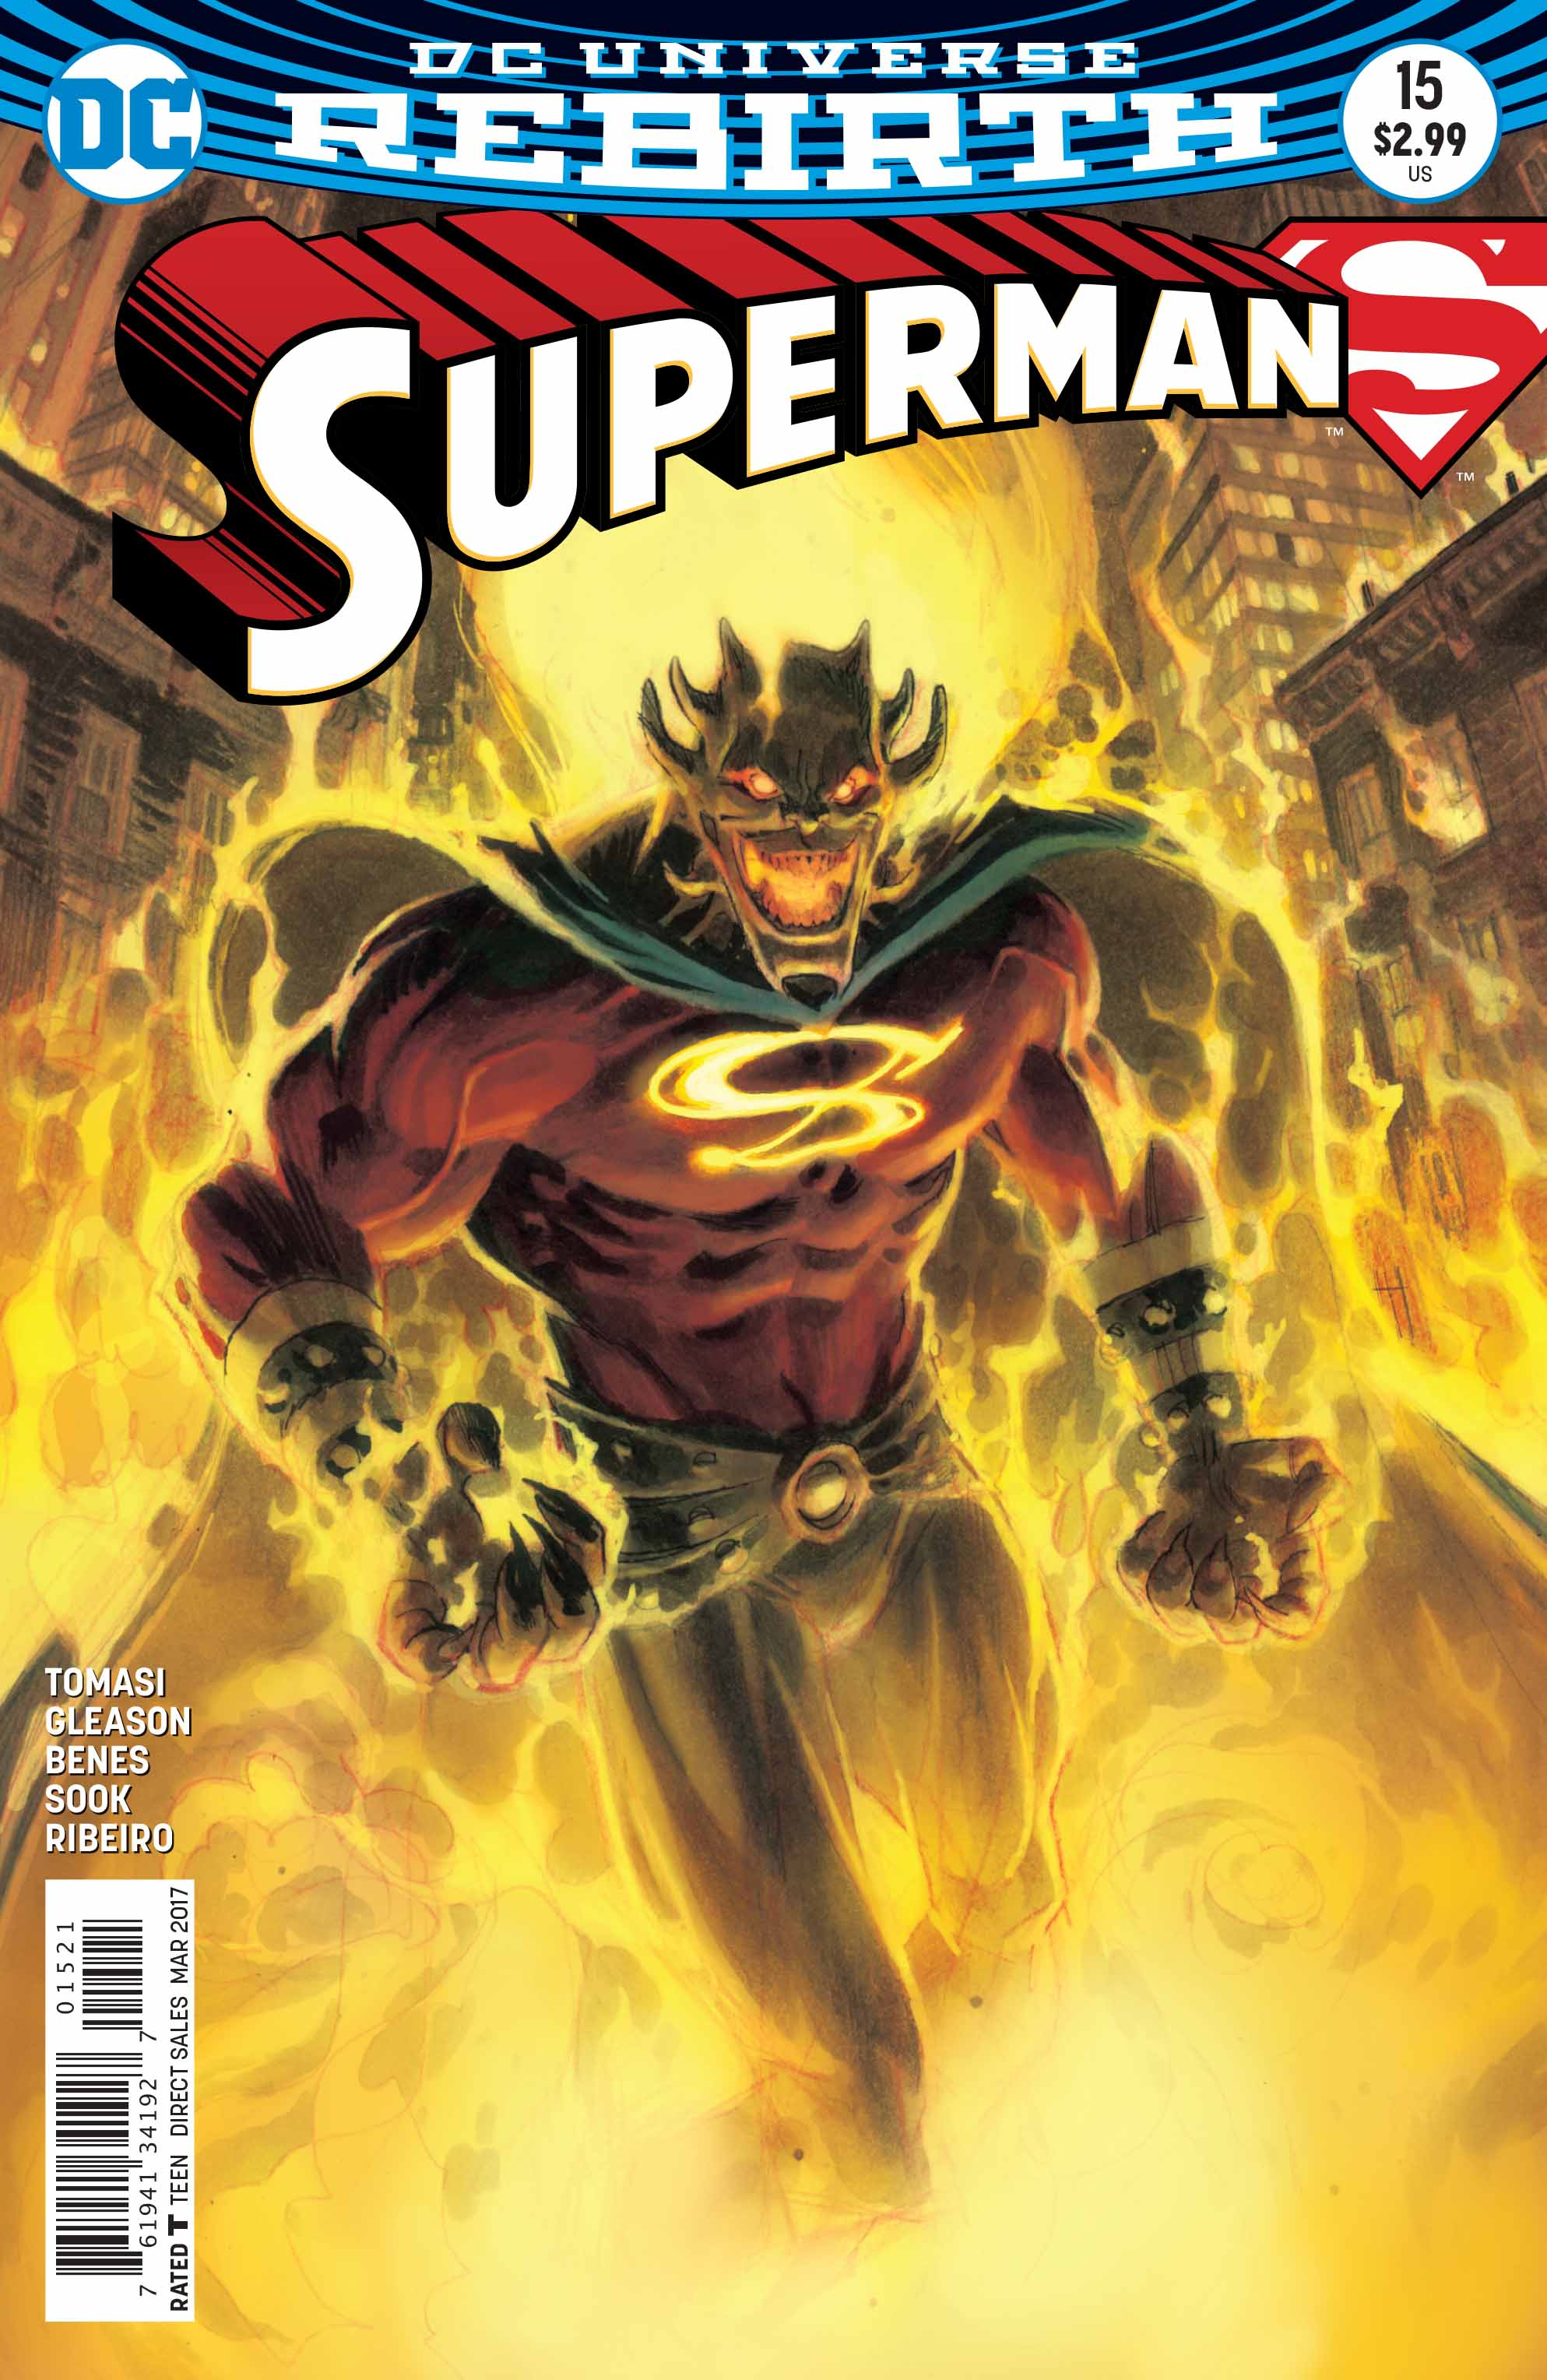 Superman #15 Review